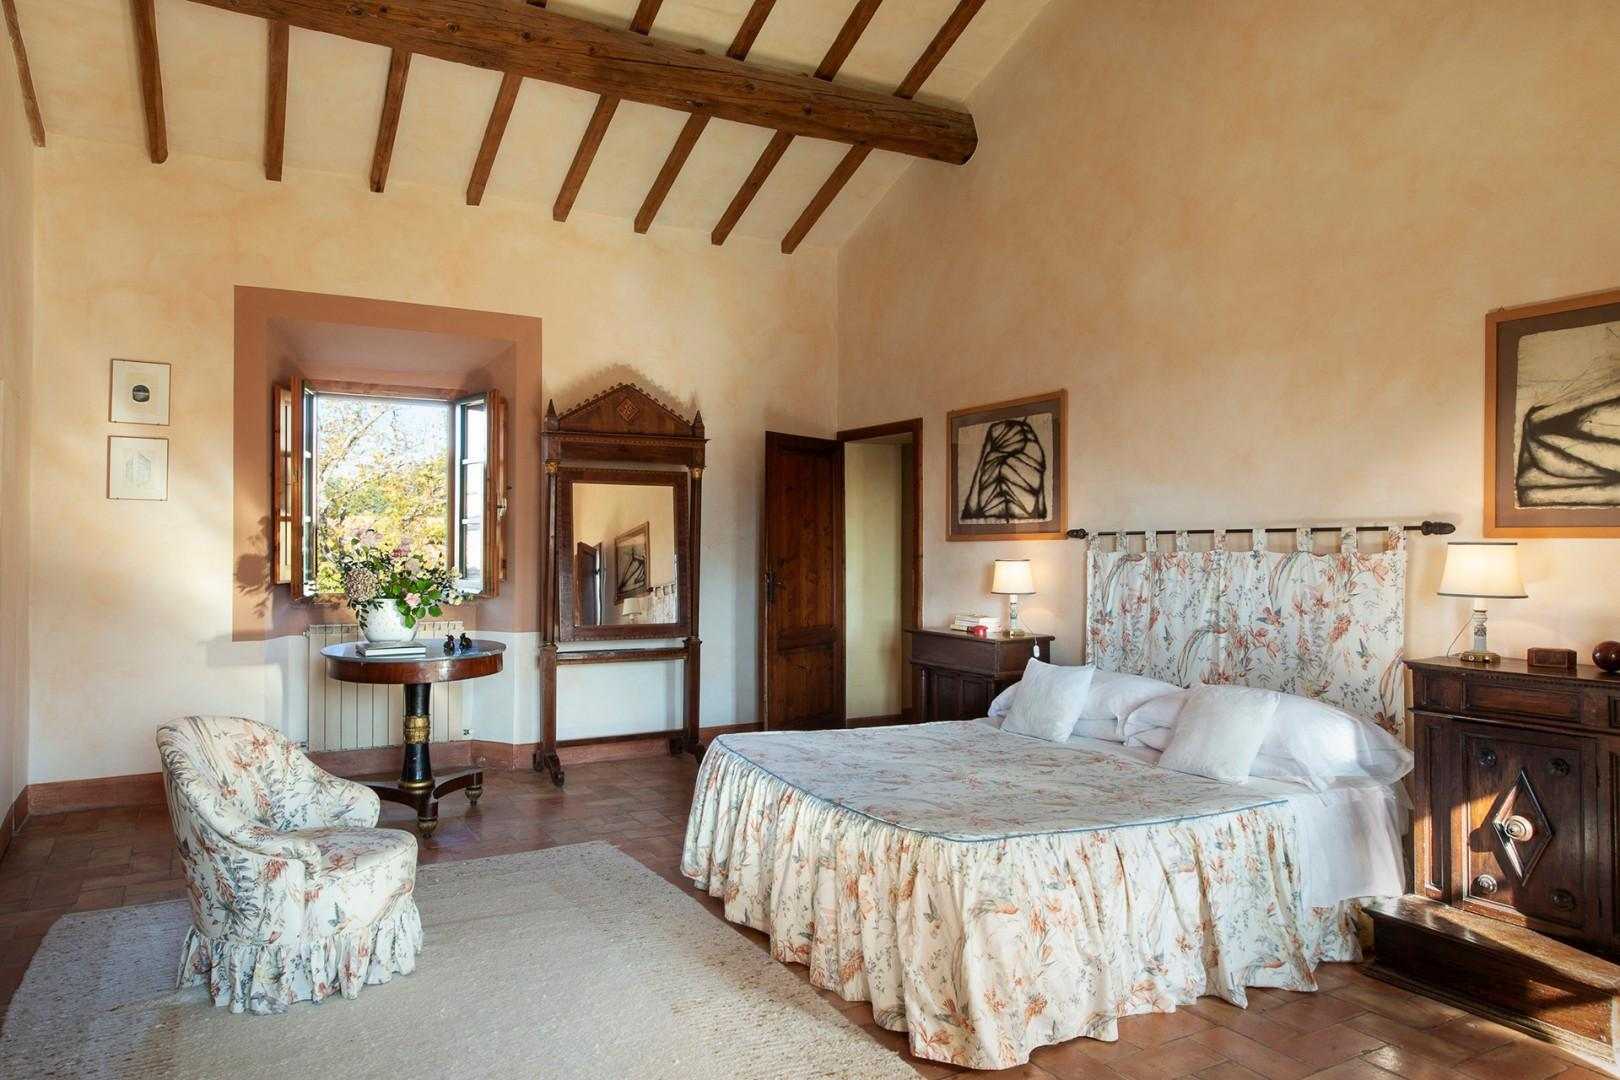 Restful bedroom with windows overlooking the garden and olive orchards to one side.